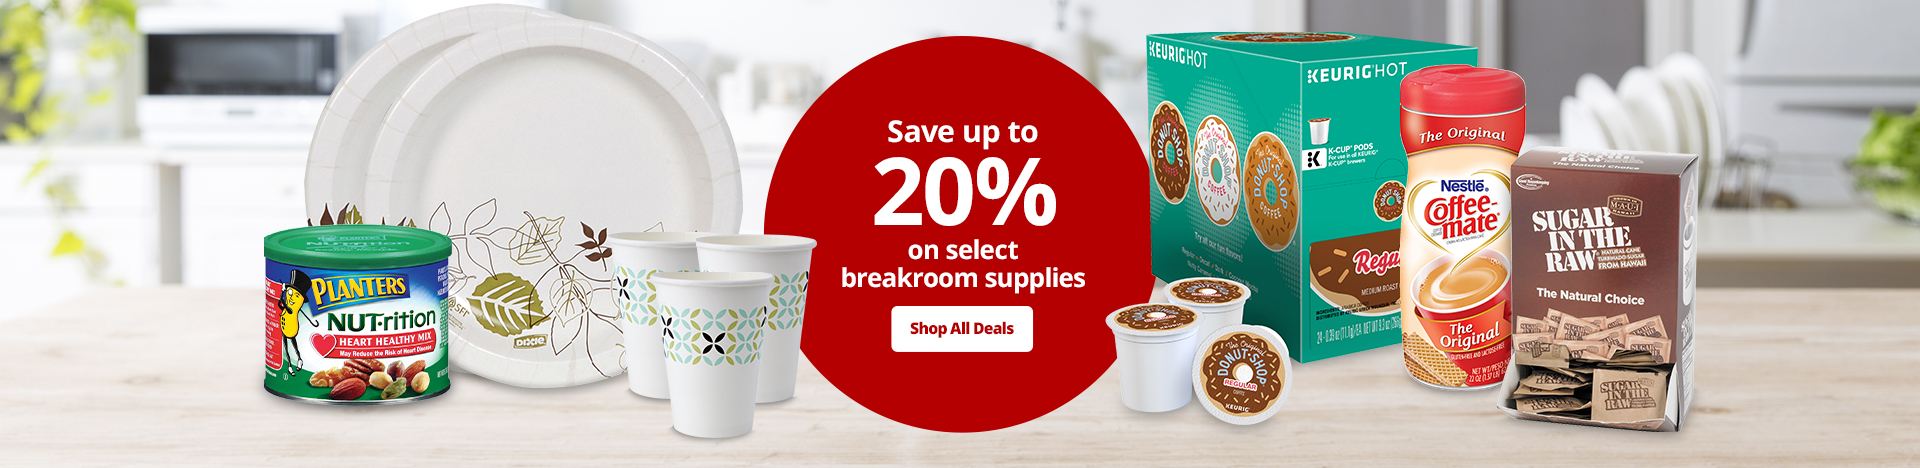 Save Up To 20% On These Breakroom Products